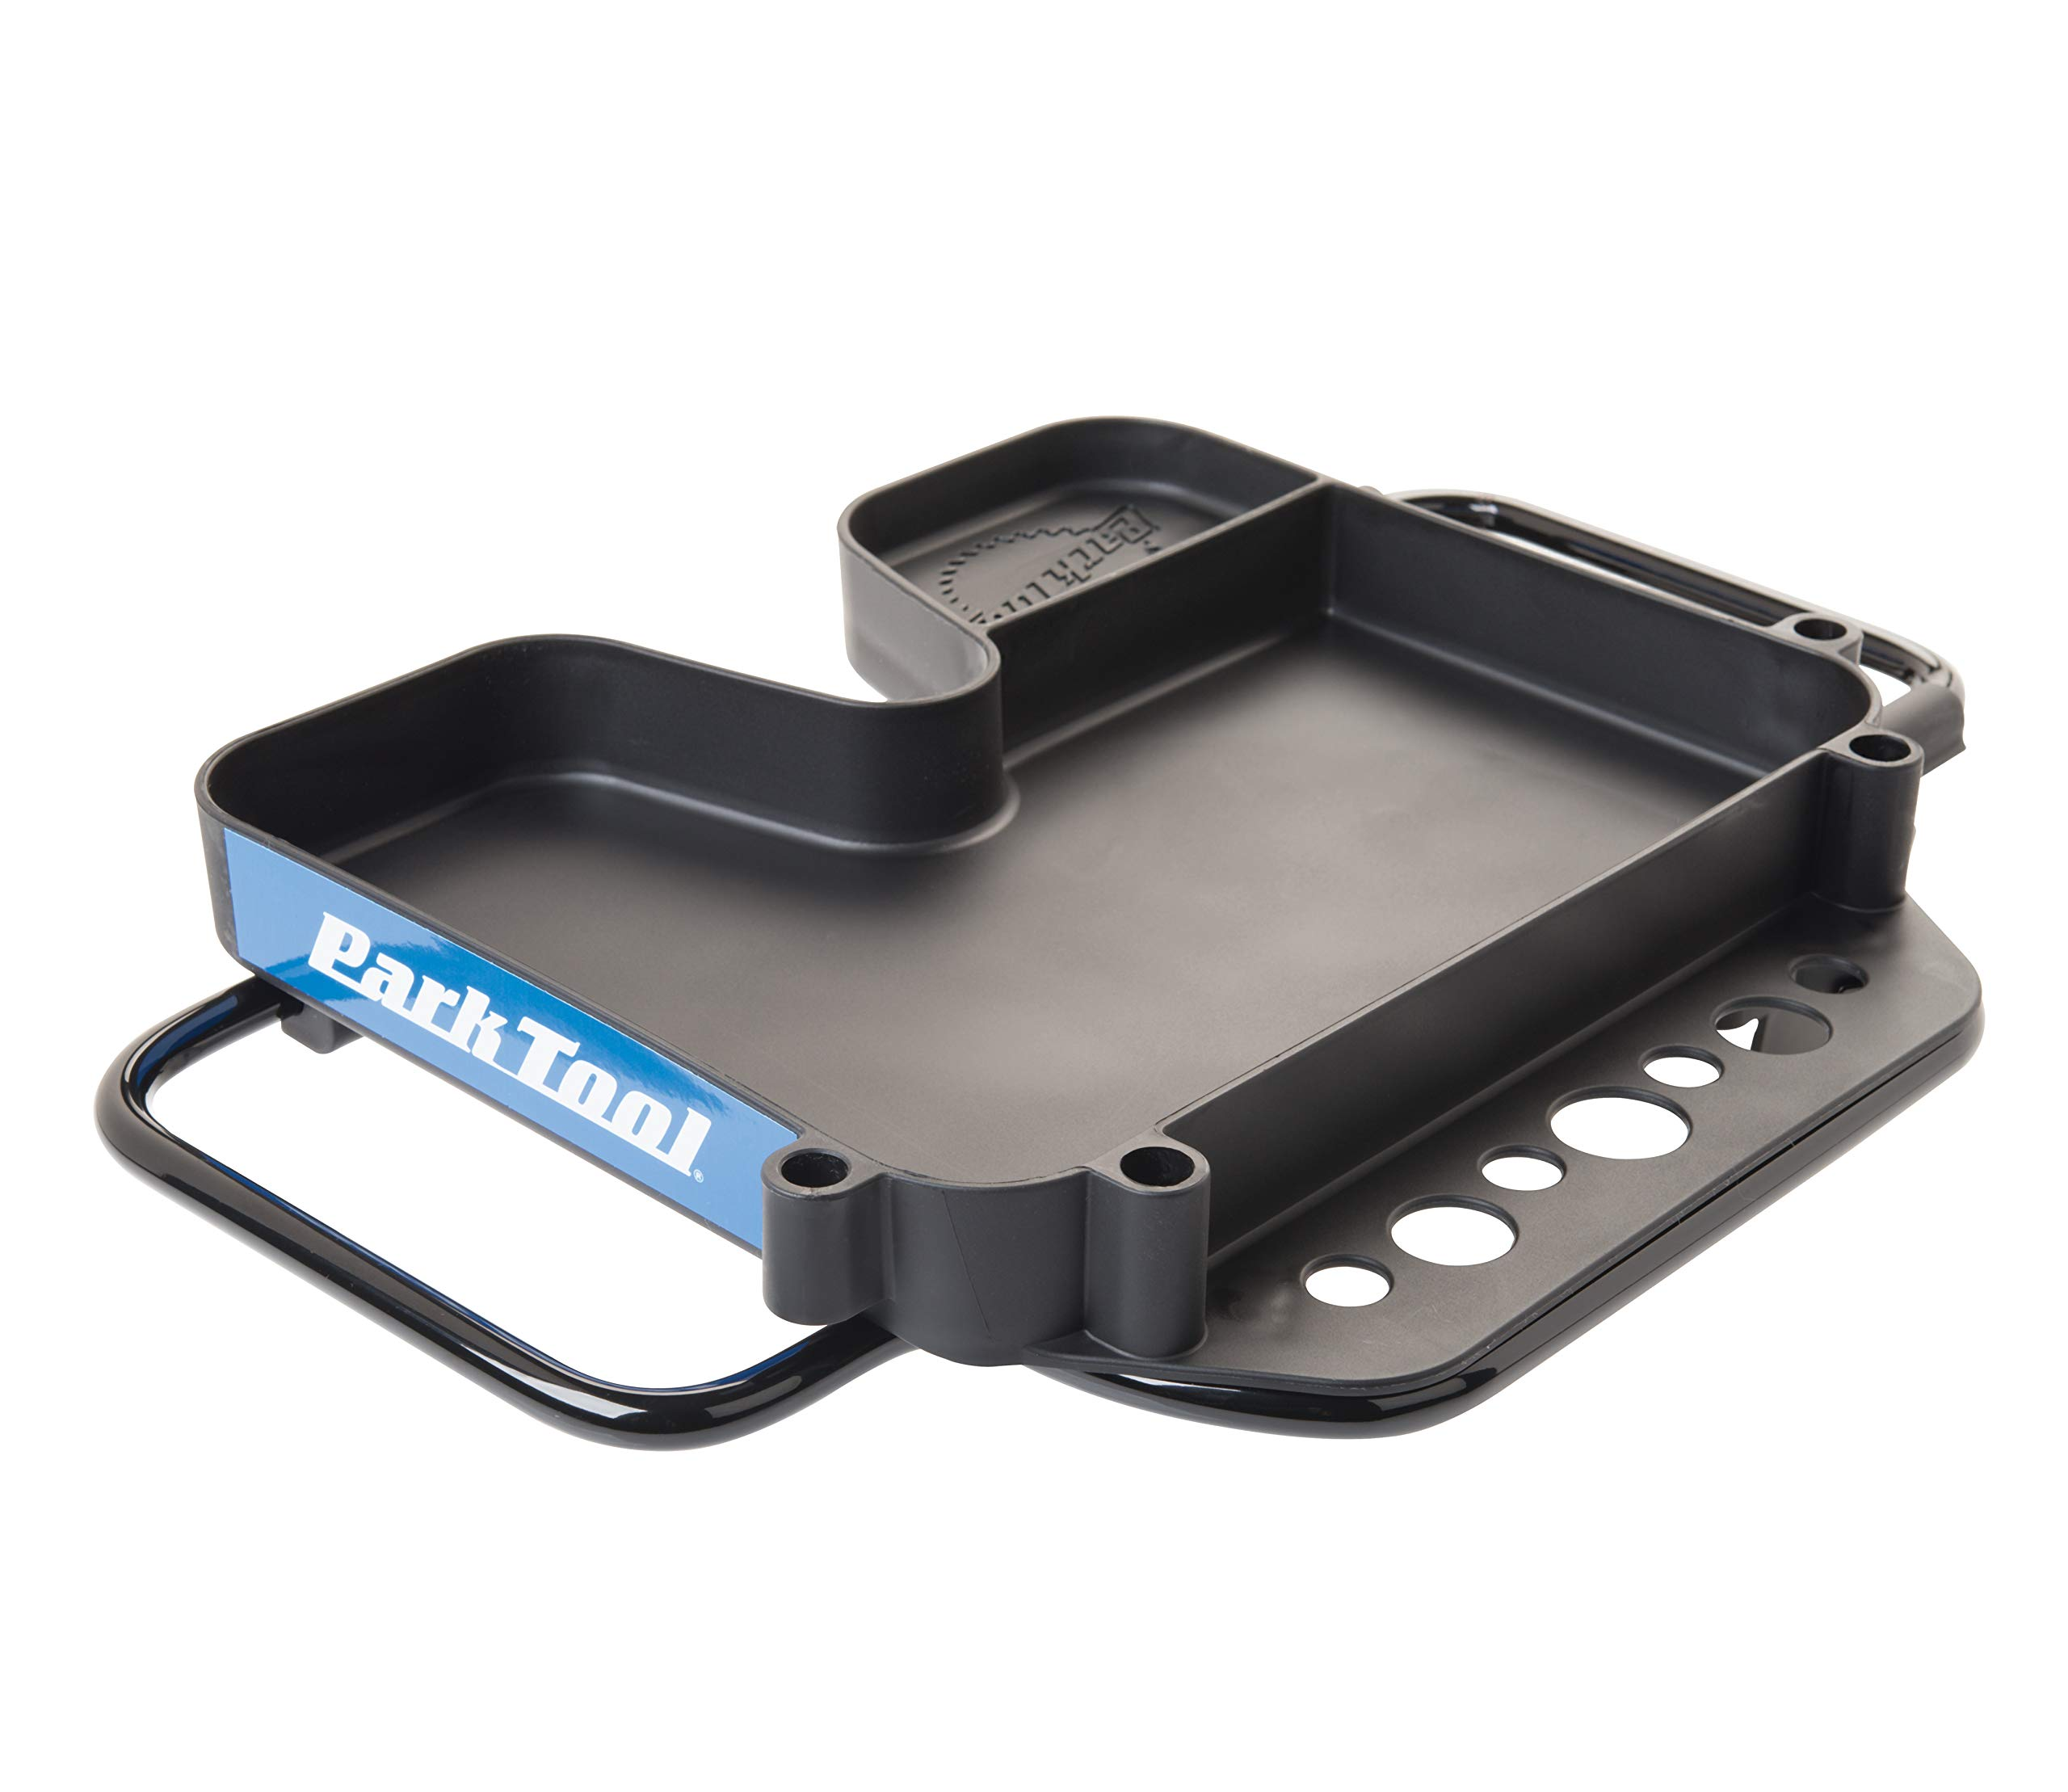 Stand Accessories Park Tool 1707.2 Work Tray Collar Repair Stand Accessory